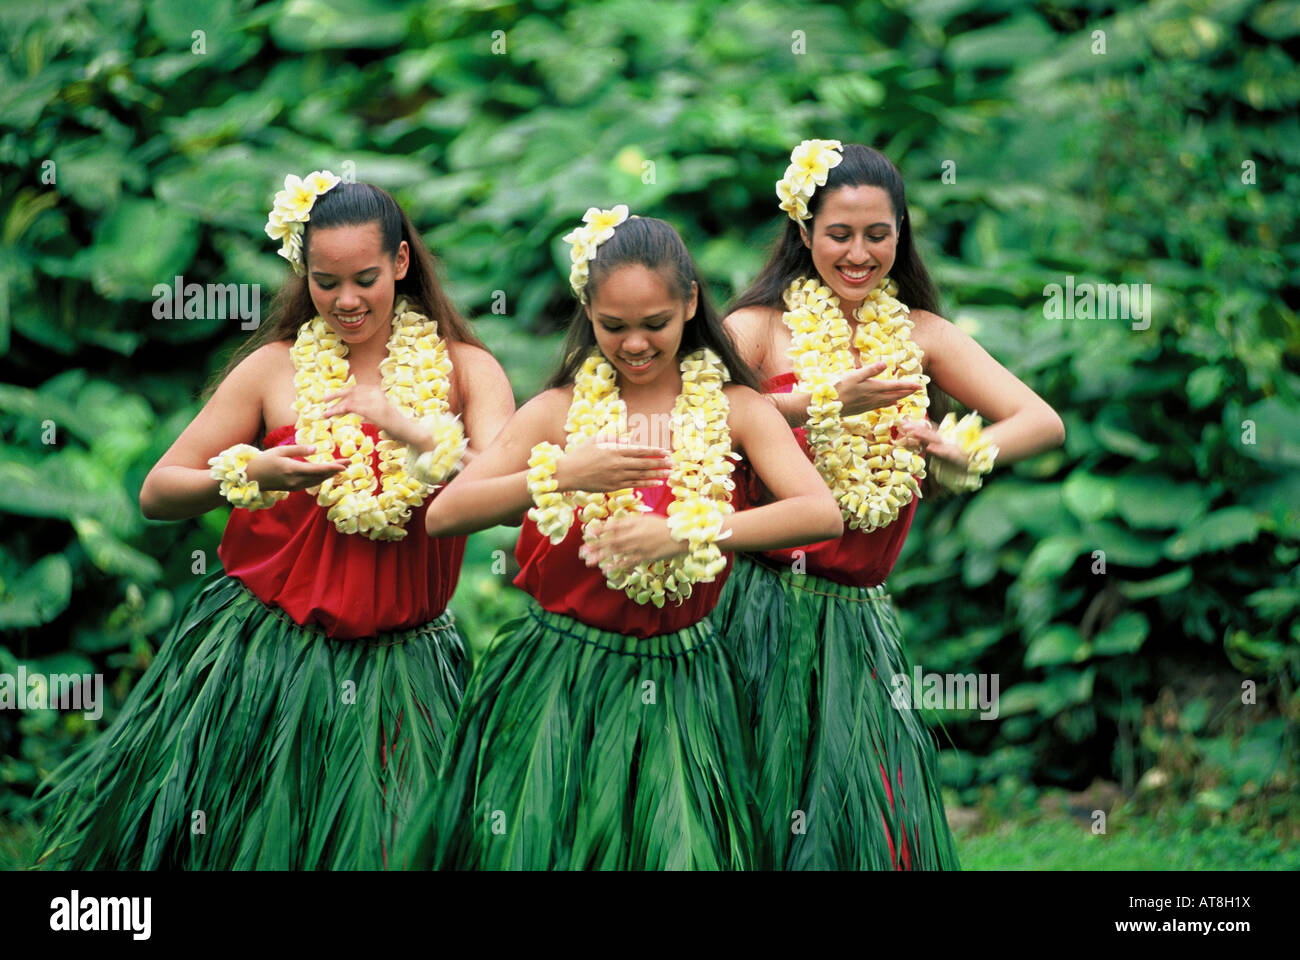 Three Hula Dancers in ti leaf skirts and yellow plumeria leis performing an Auana style hula - Stock Image